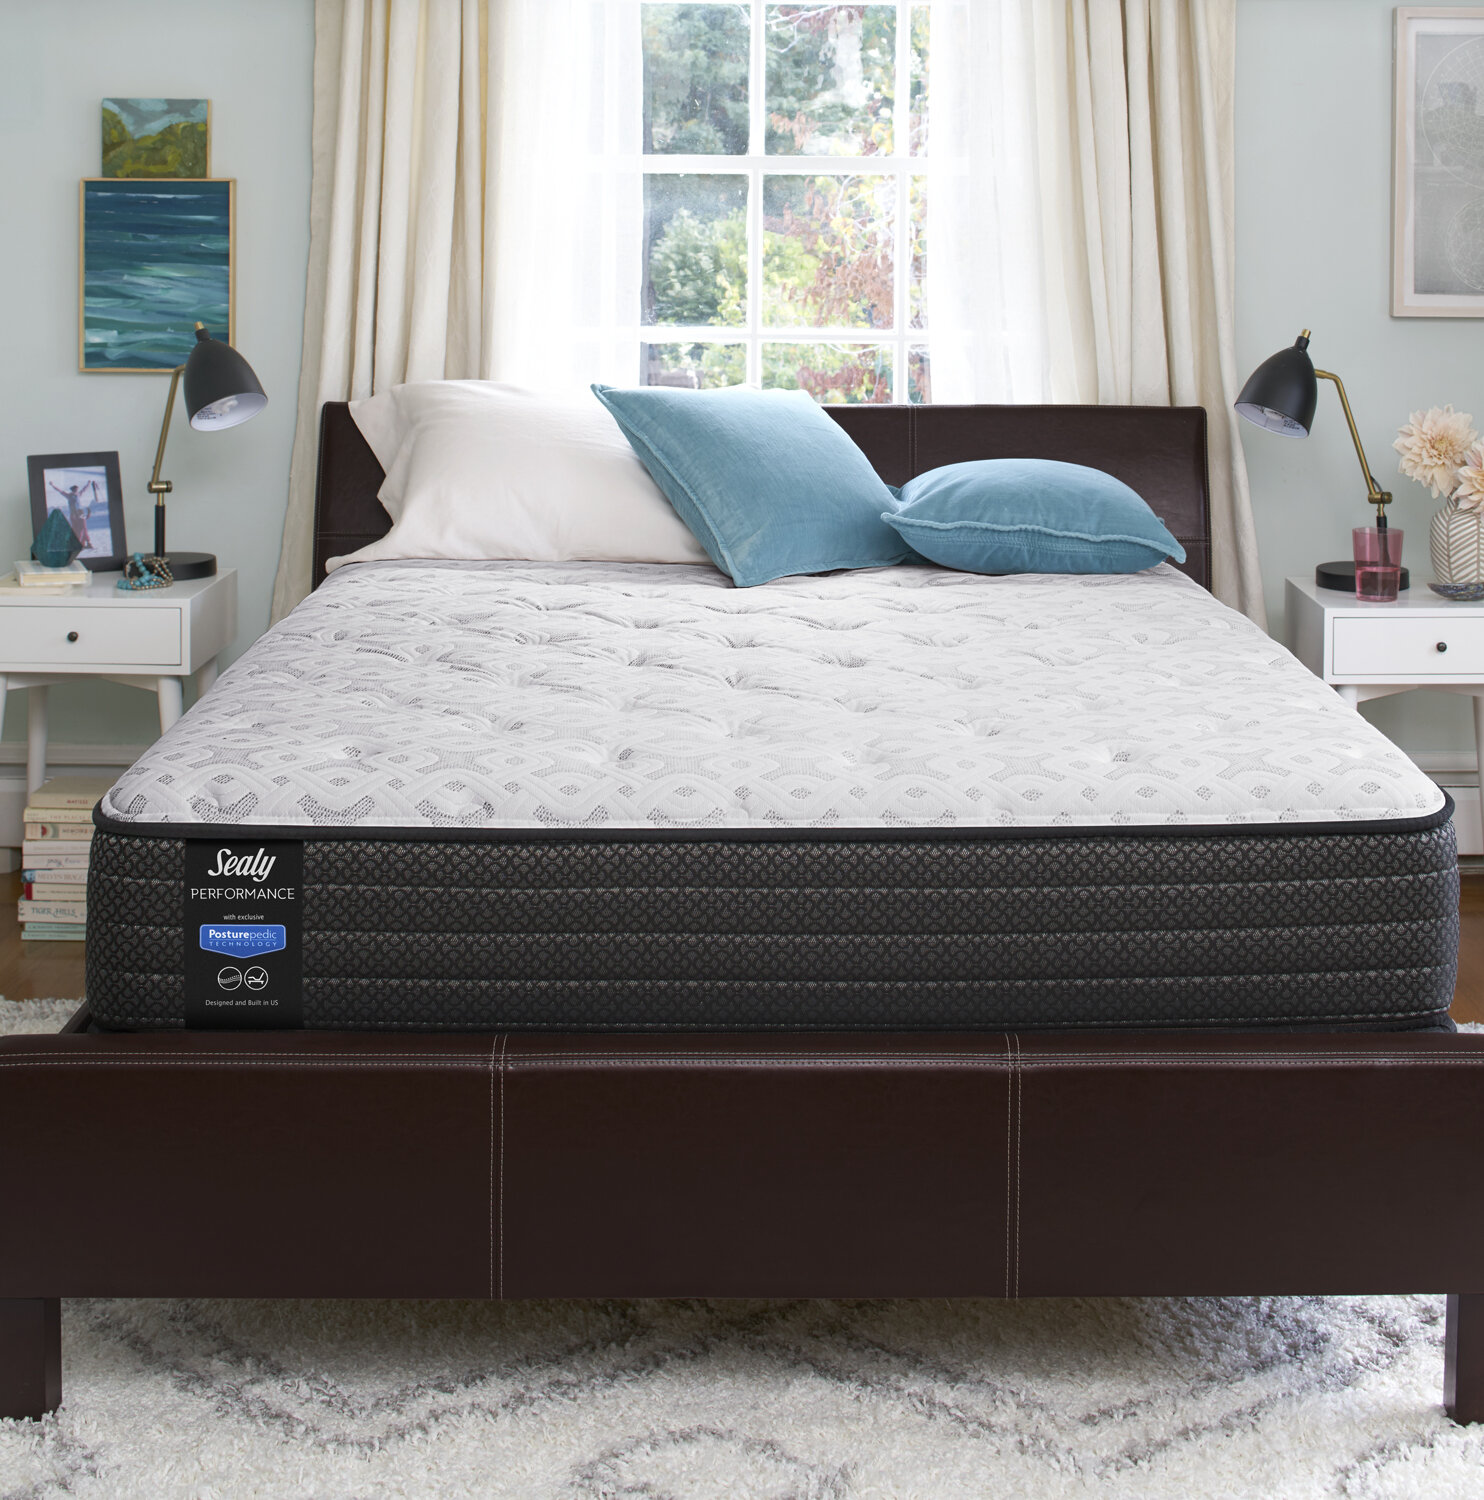 Sealy Response Performance 12 Cushion Firm Tight Top Mattress